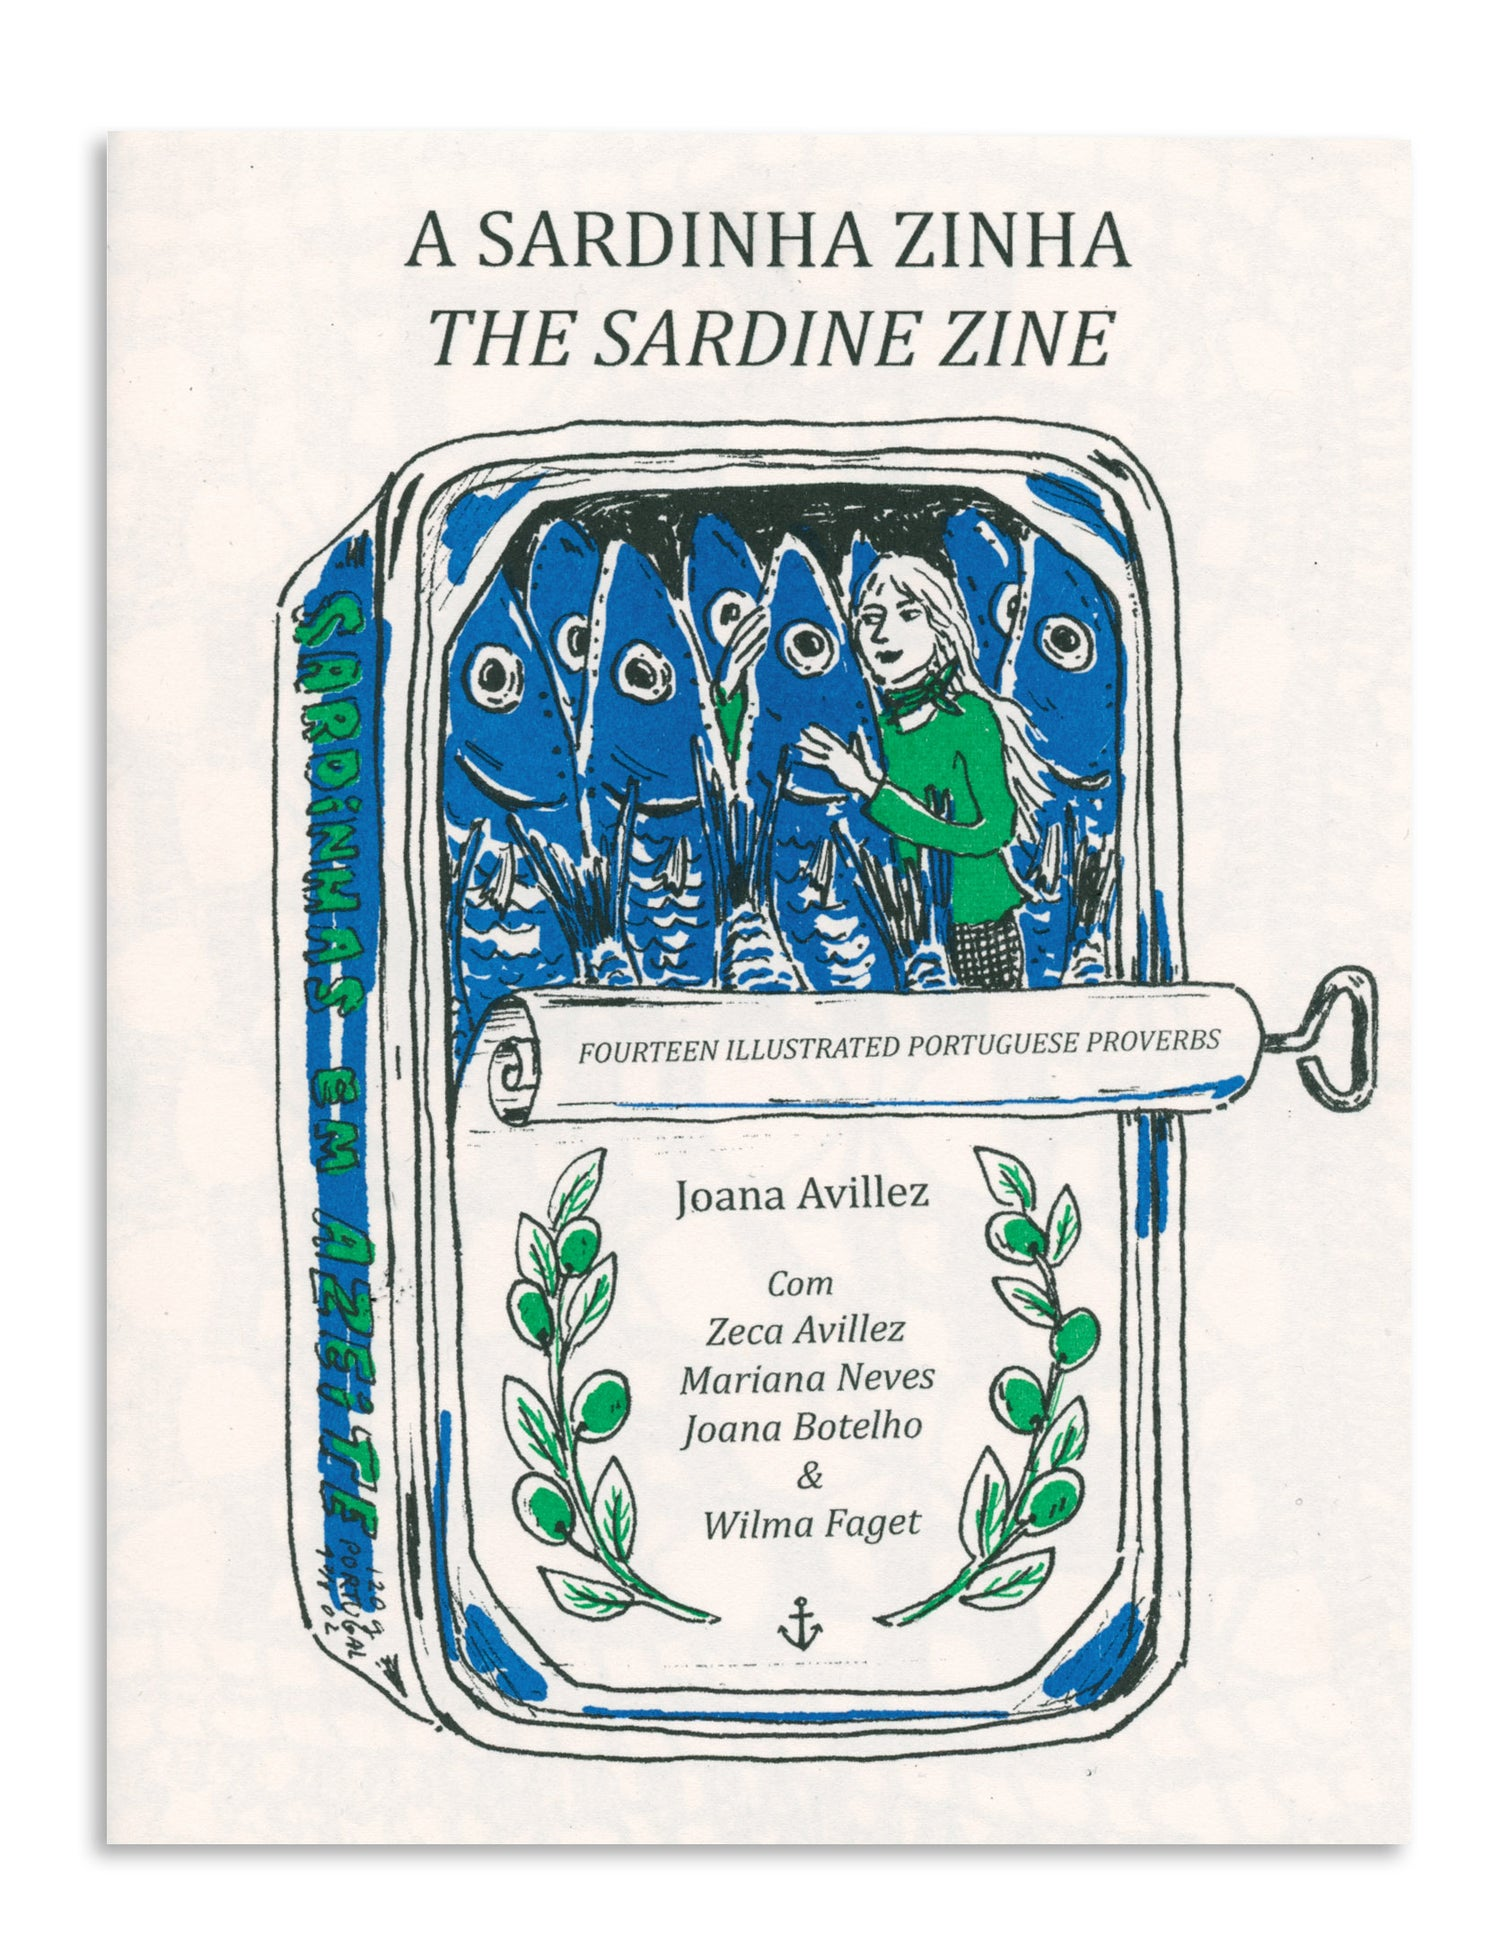 Image of A Sardinha Zinha (The Sardine Zine) by Joana Avillez